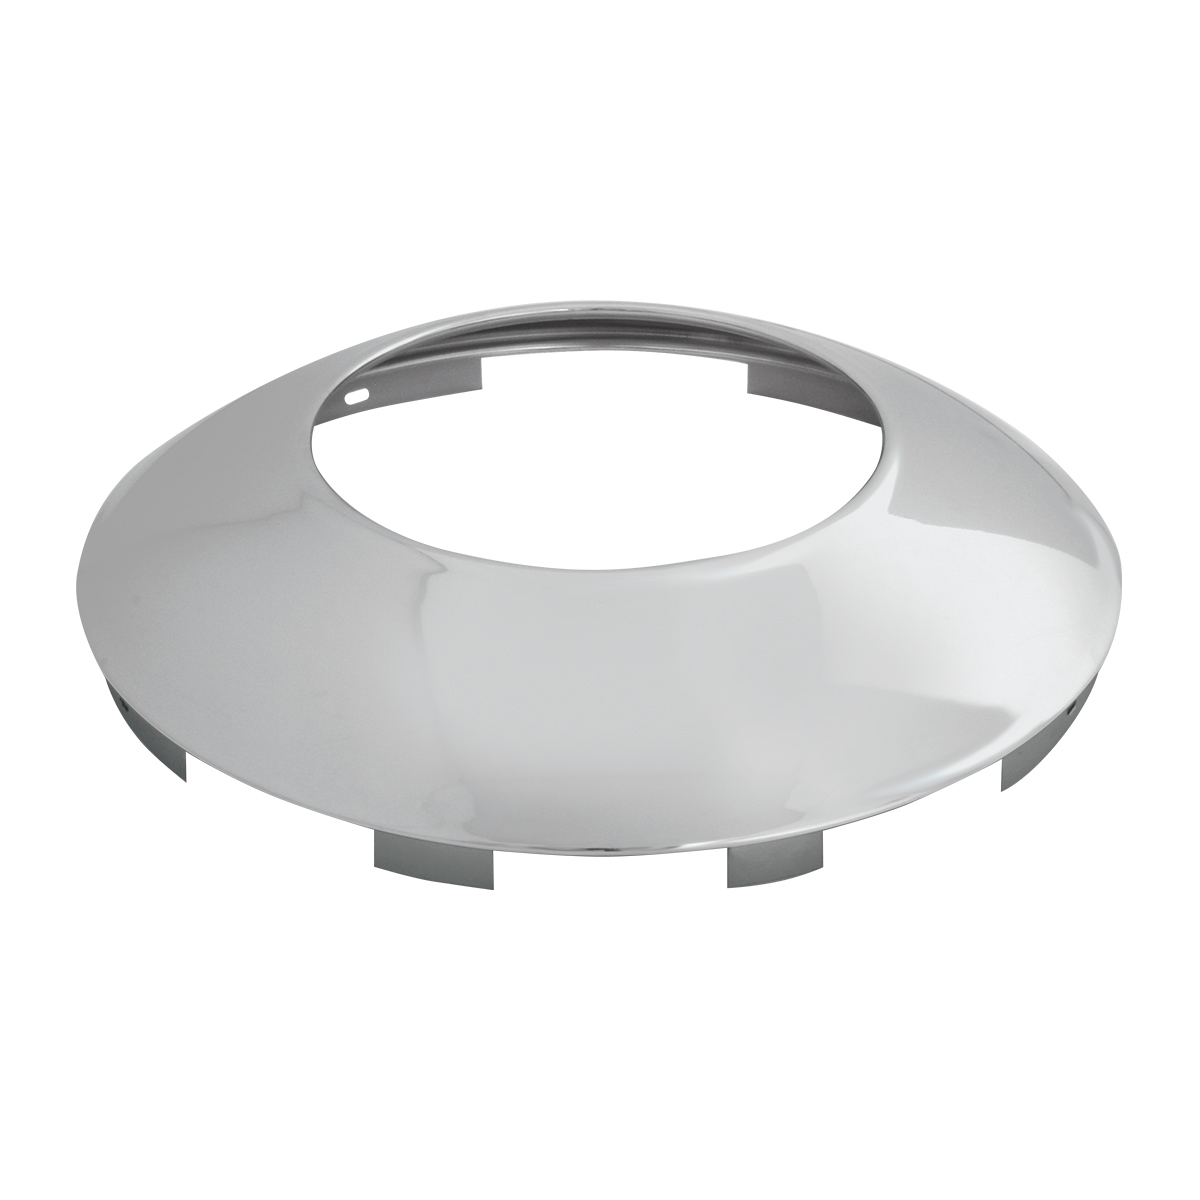 "Chrome Plated ⁷∕₁₆"" Universal Front Notched Hubdometer Cap"